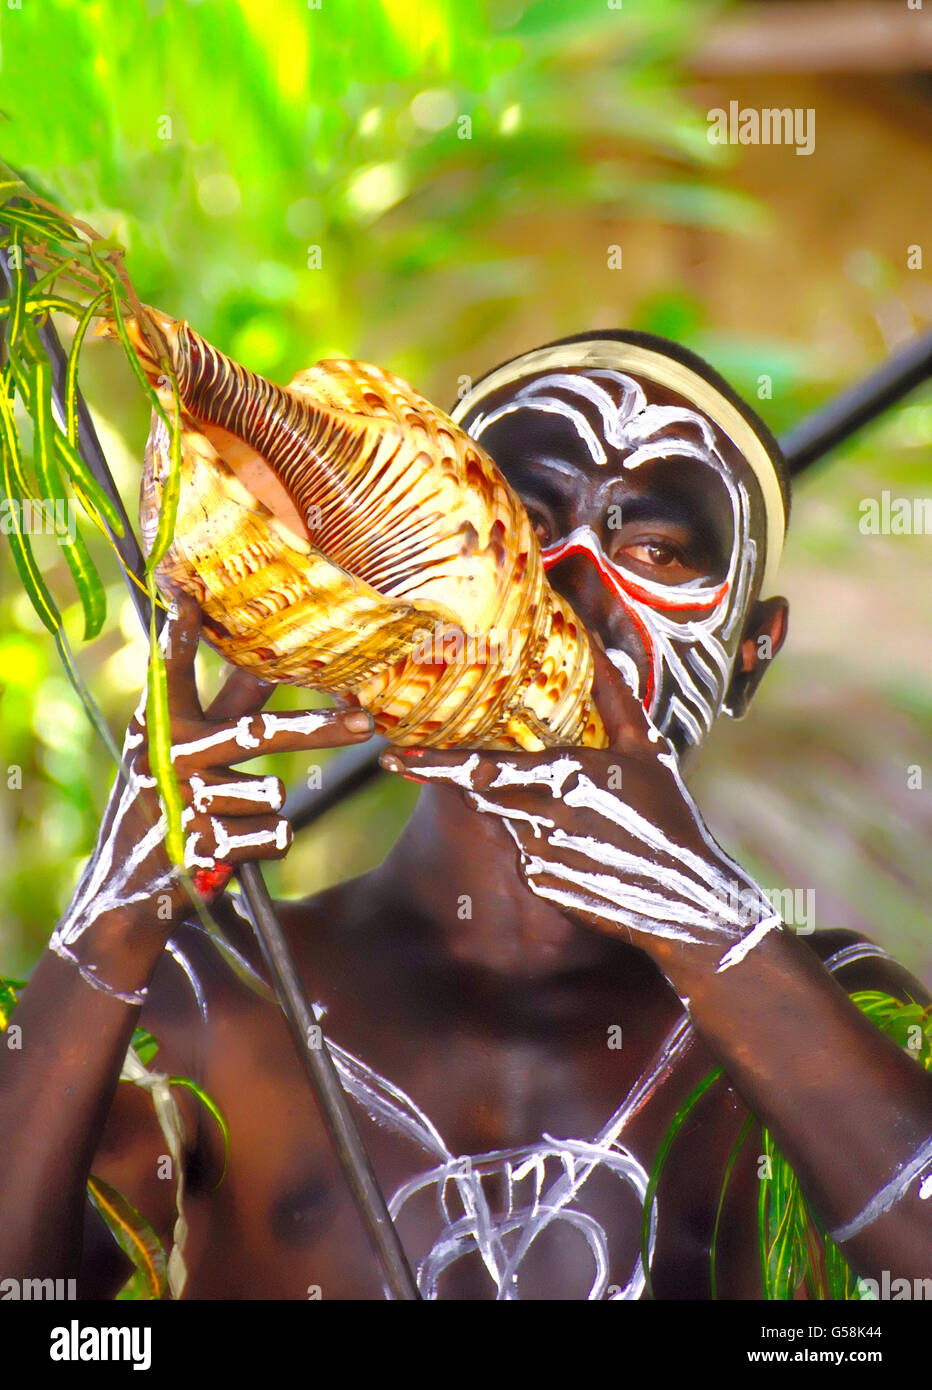 Trobriand Island warrior in tribal cultural festival dress blowing on shell horn at Alotau, Papua New Guinea. - Stock Image